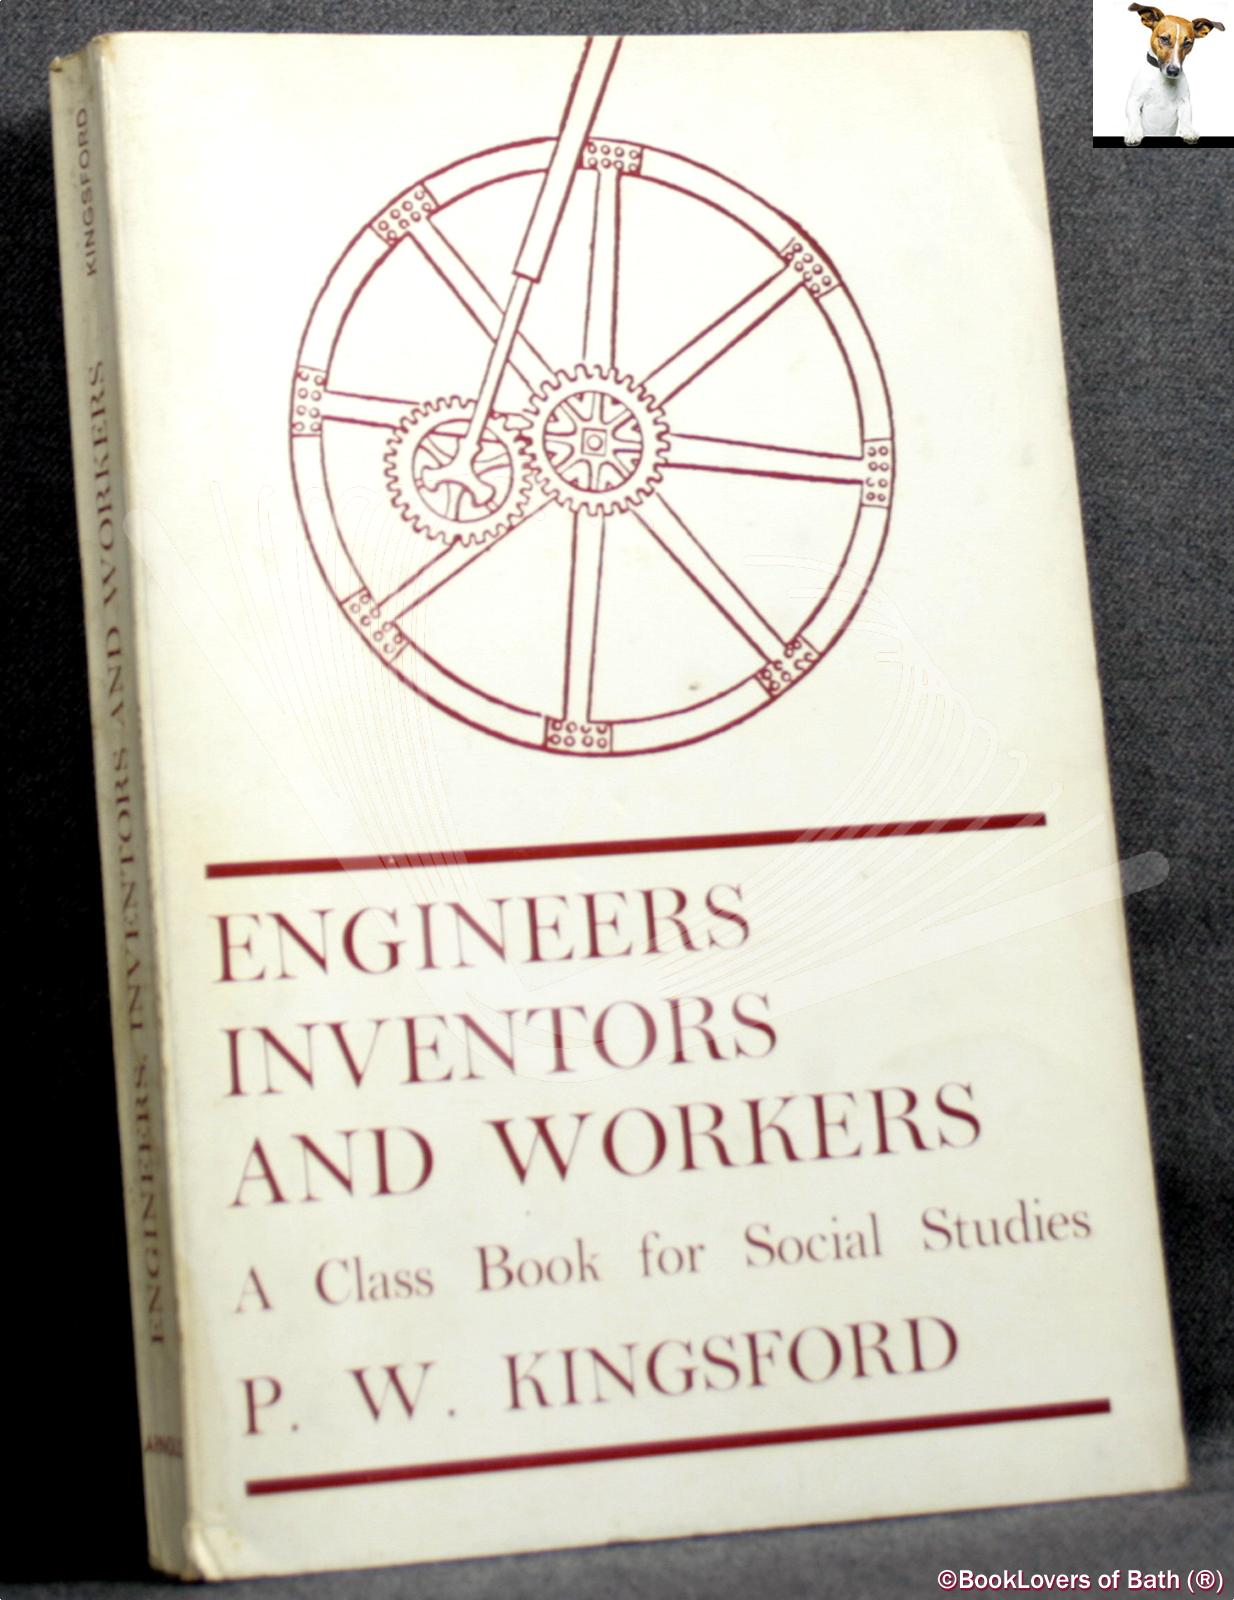 Engineers, Inventors and Workers: A Class Book for Social Studies - P. W. [Peter Wilfred] Kingsford